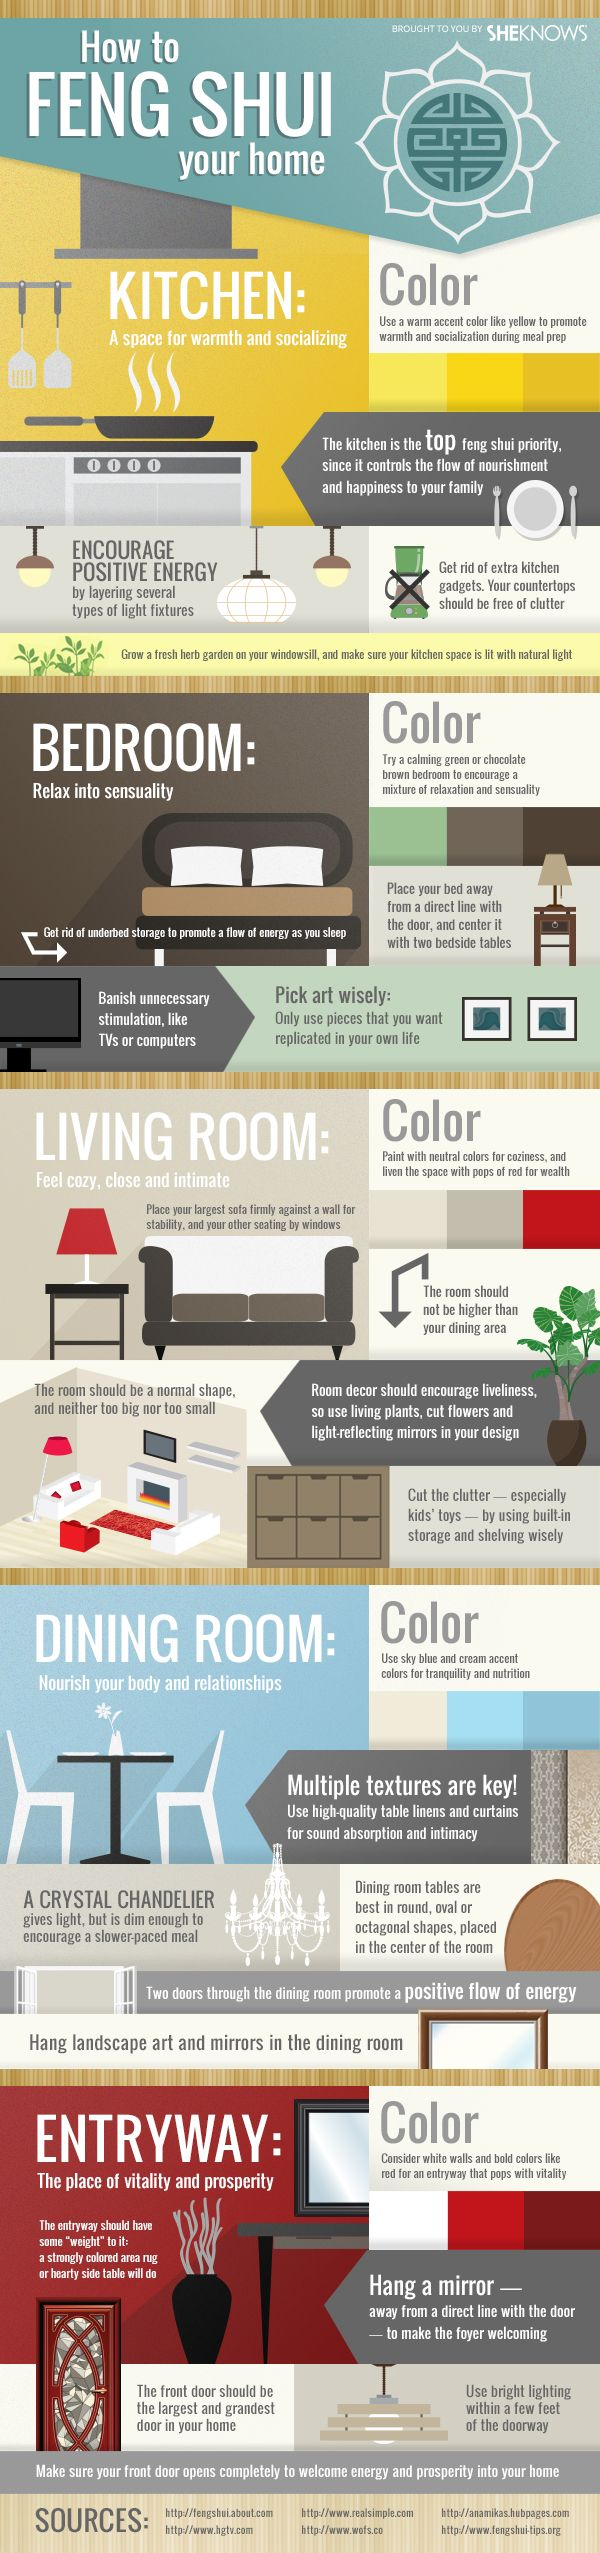 les 25 meilleures id es de la cat gorie feng shui sur pinterest feng shui conseils et. Black Bedroom Furniture Sets. Home Design Ideas